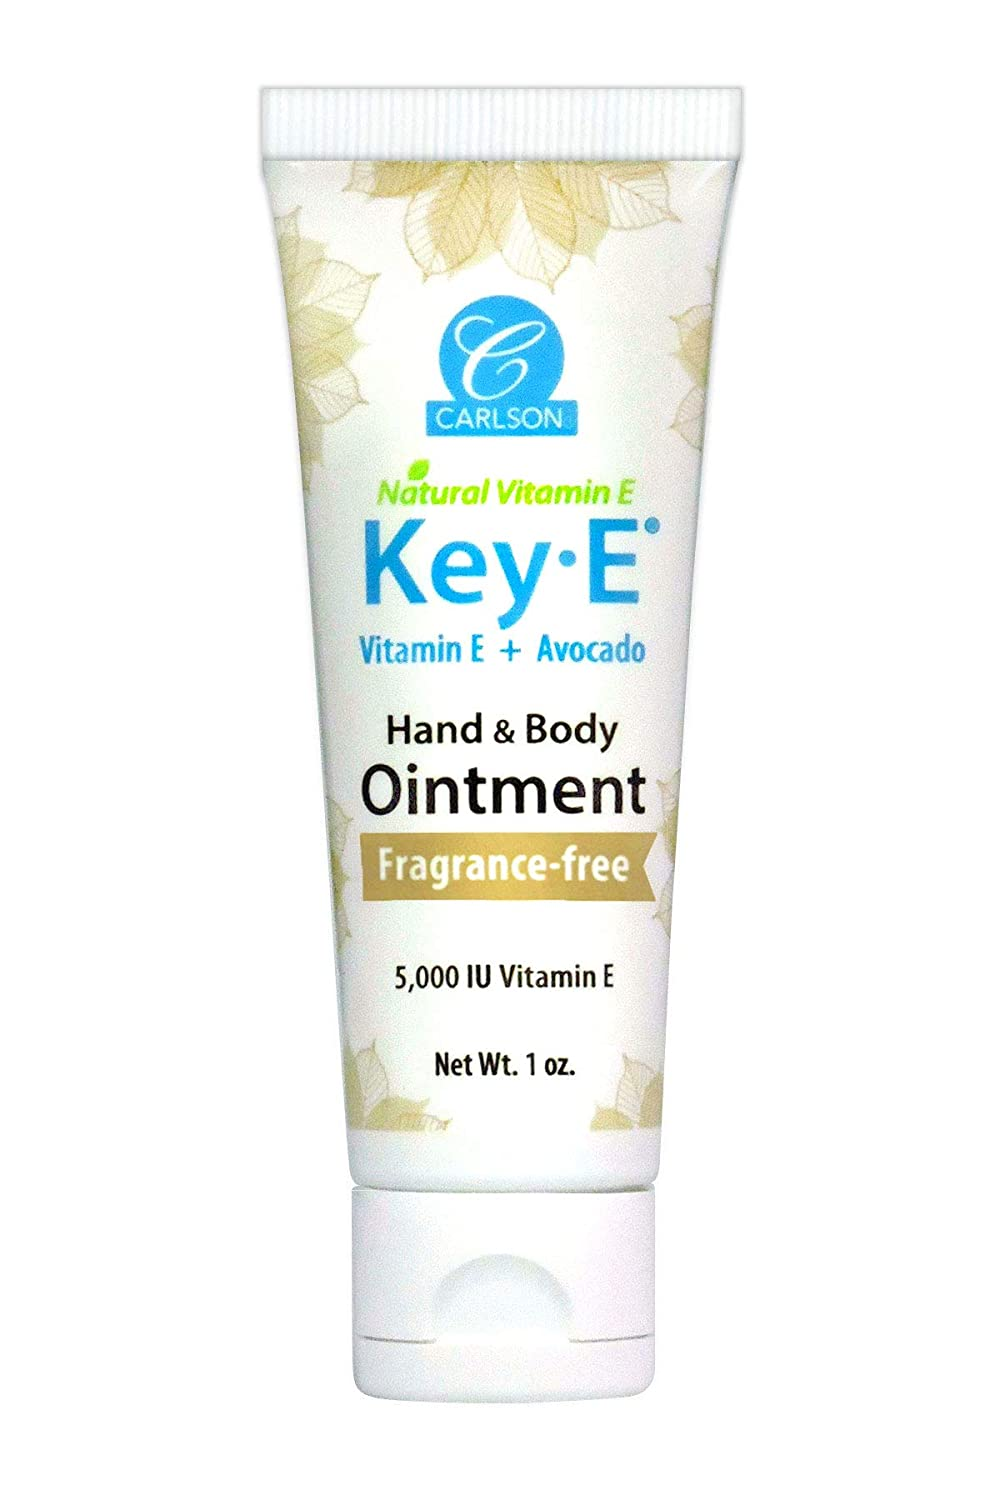 Carlson - Key-E Hand and Body Ointment, For Dry & Rough Skin, Avocado + Coconut Oil + Beeswax + vitamin E, Unscented (4 oz)